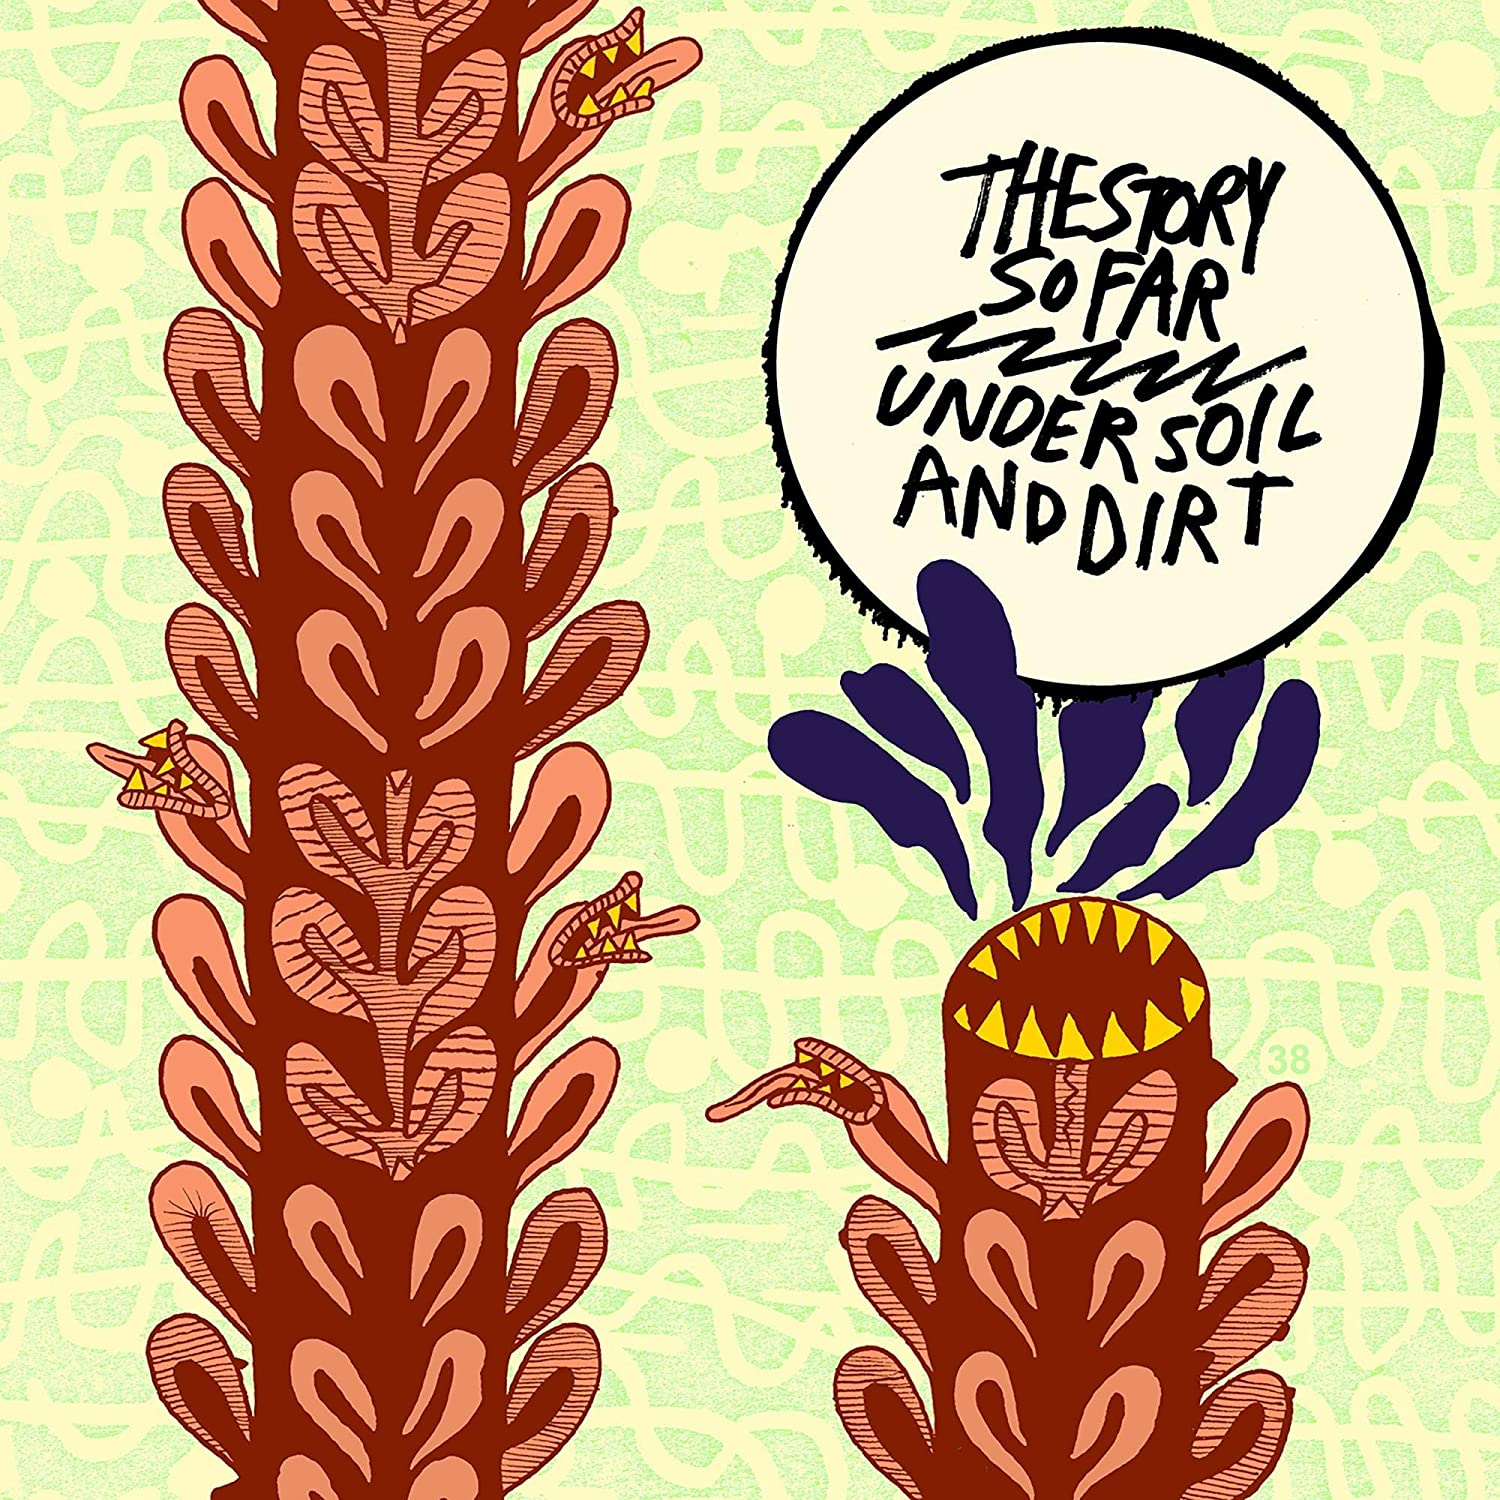 The Story So Far - Under Soil And Dirt - Amazon.com Music